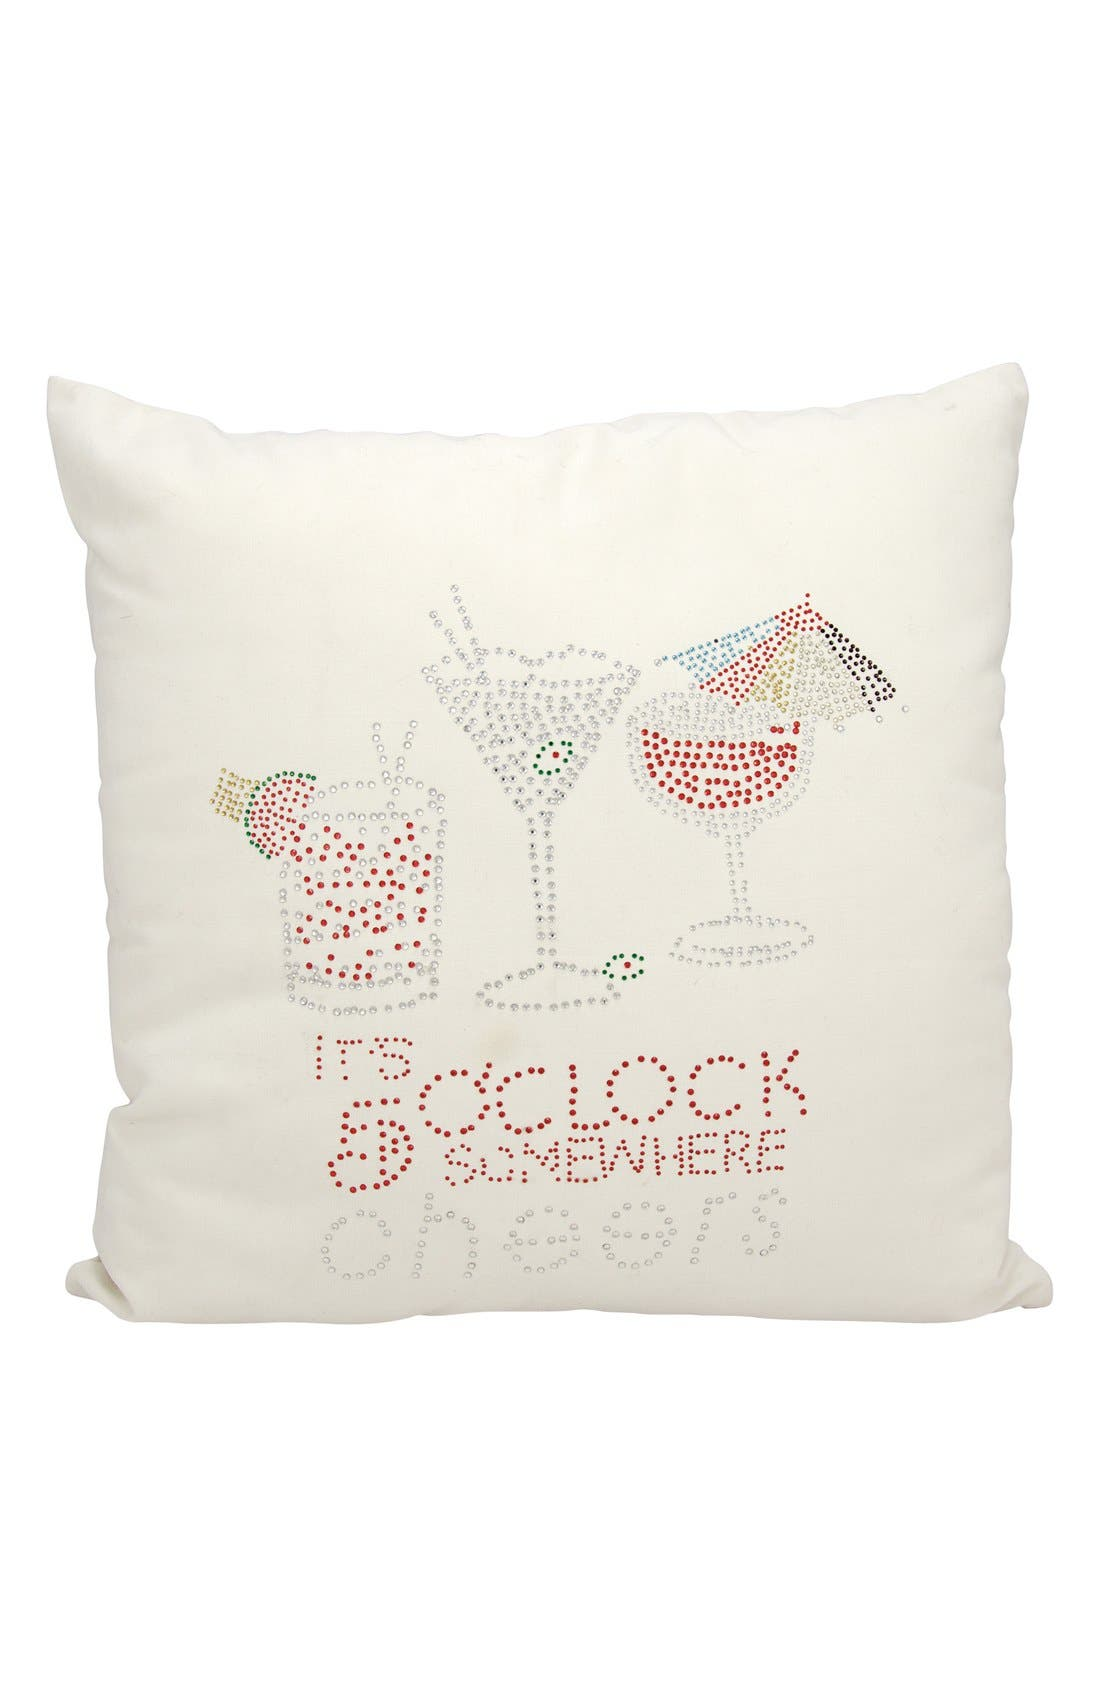 Mina Victory 'It's 5 O'Clock Somewhere' Accent Pillow